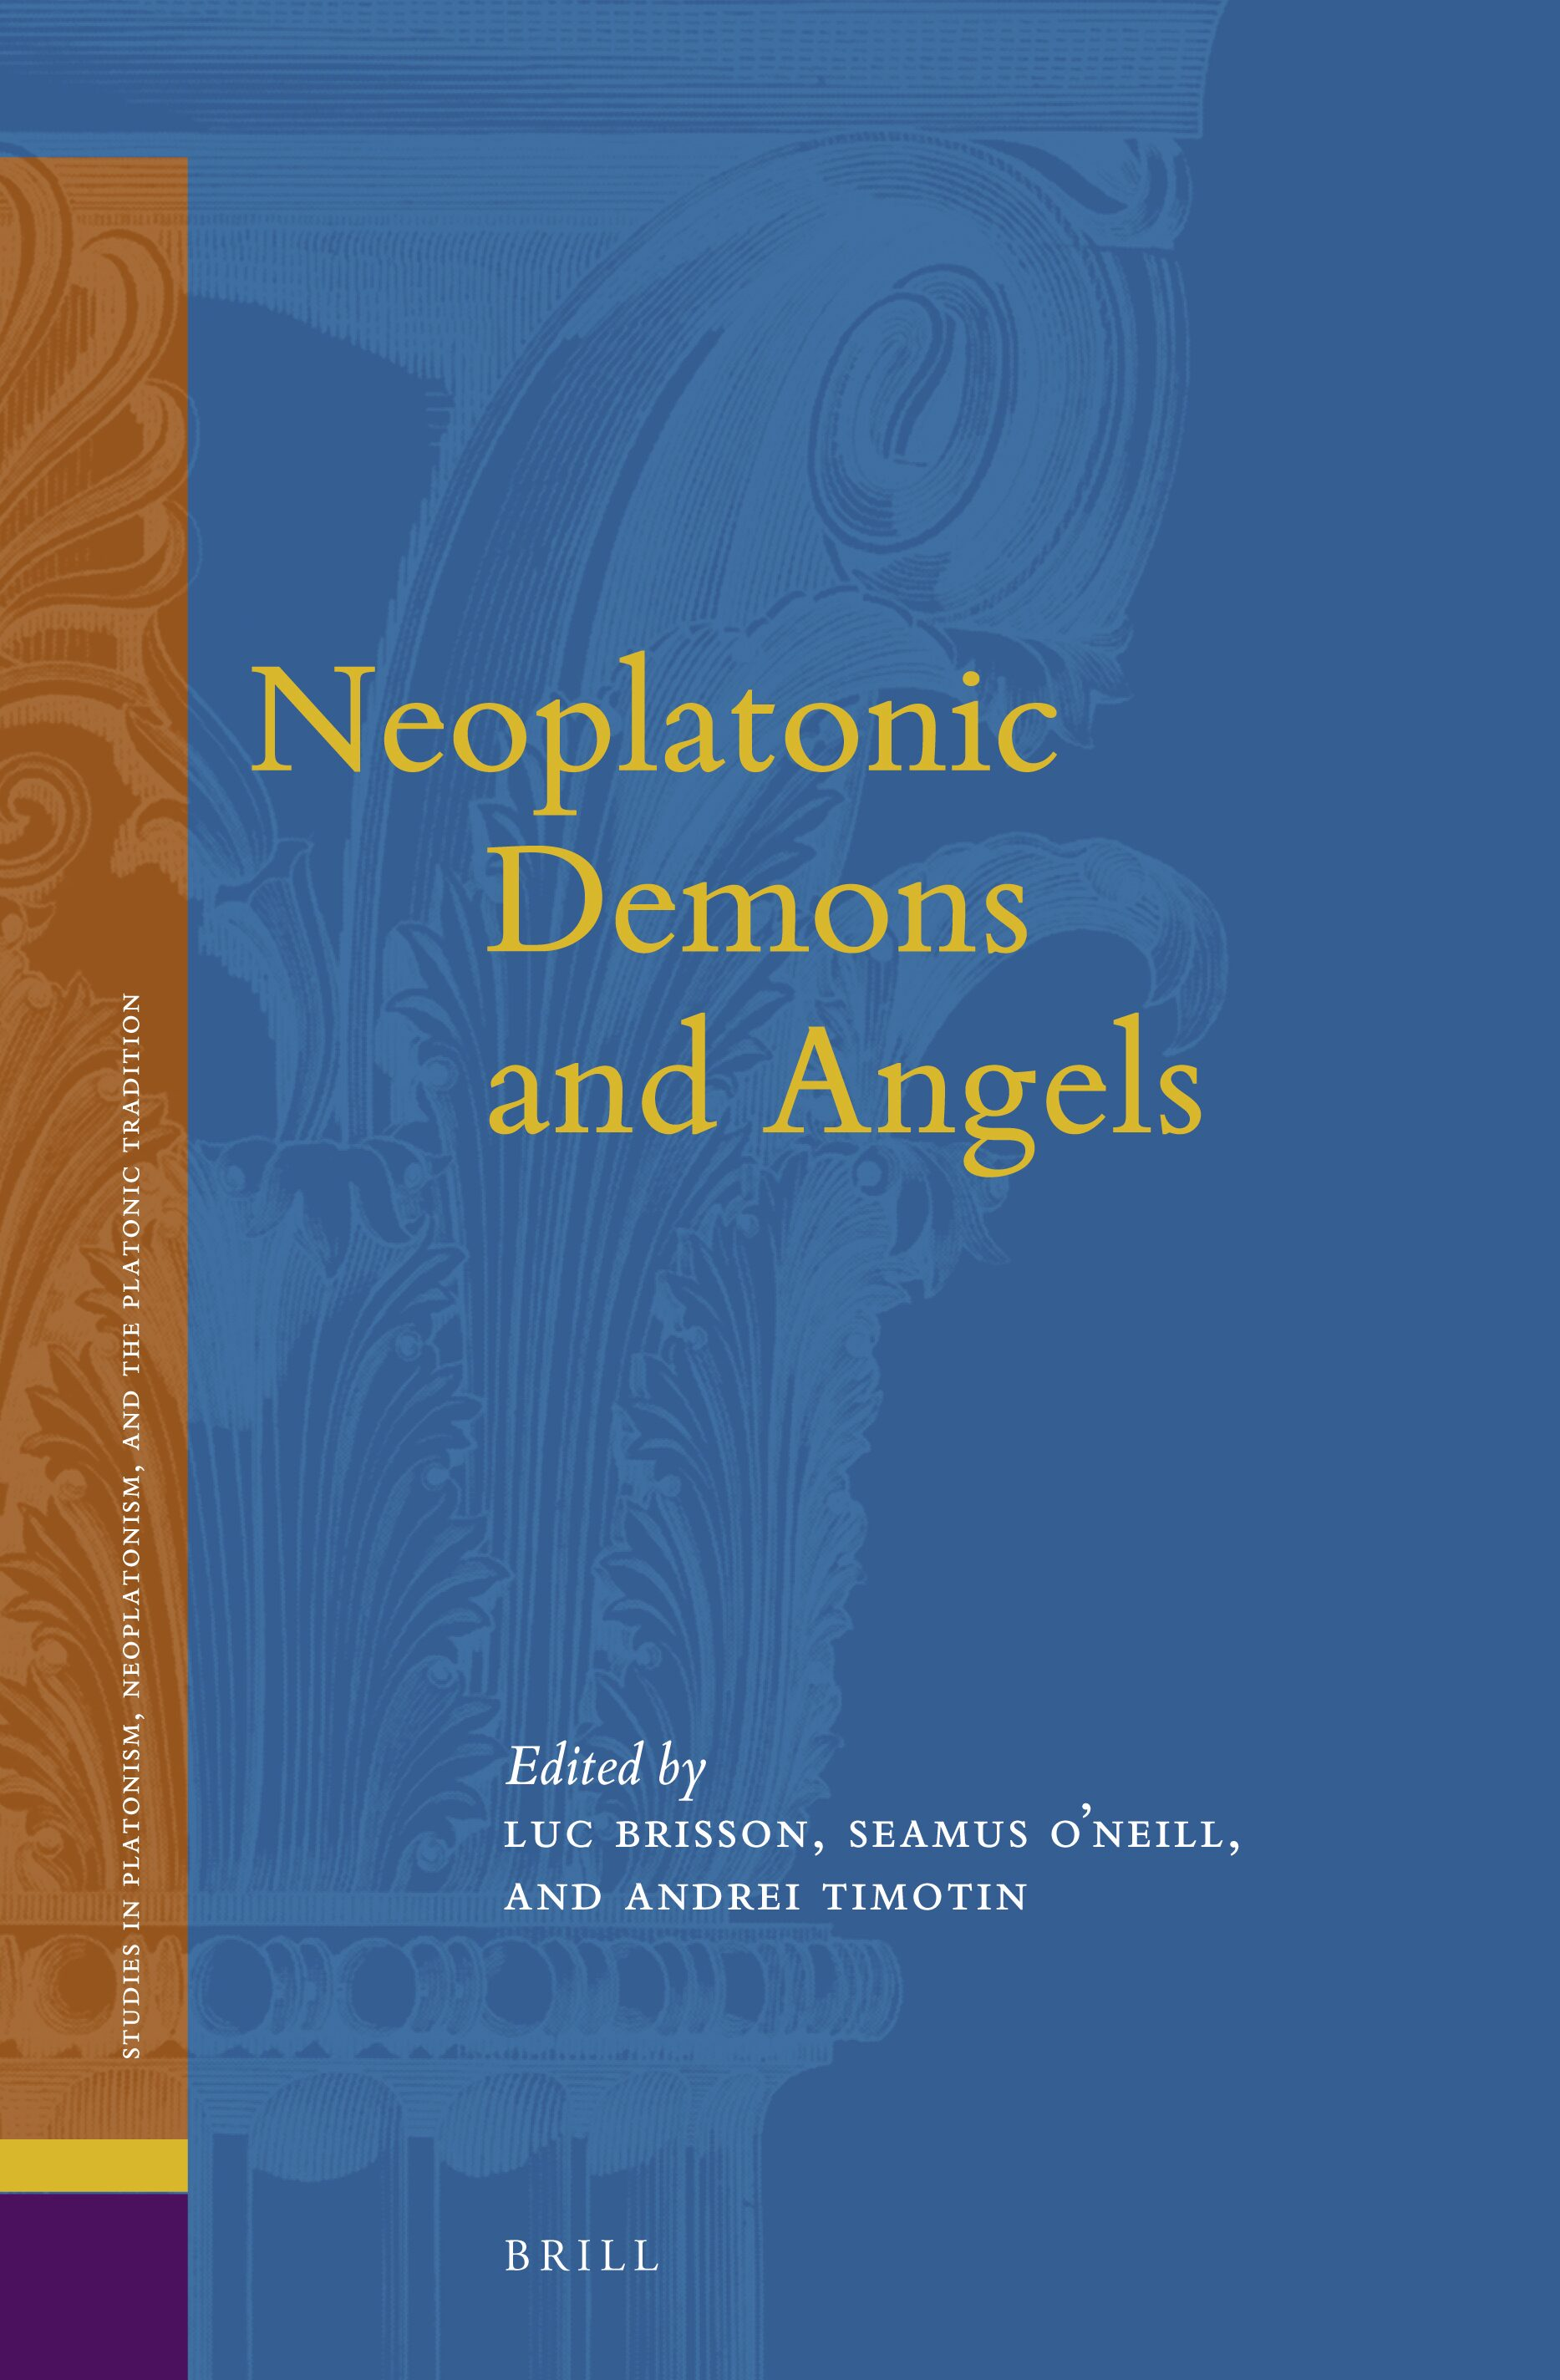 Neoplatonic Demons and Angels   Brill